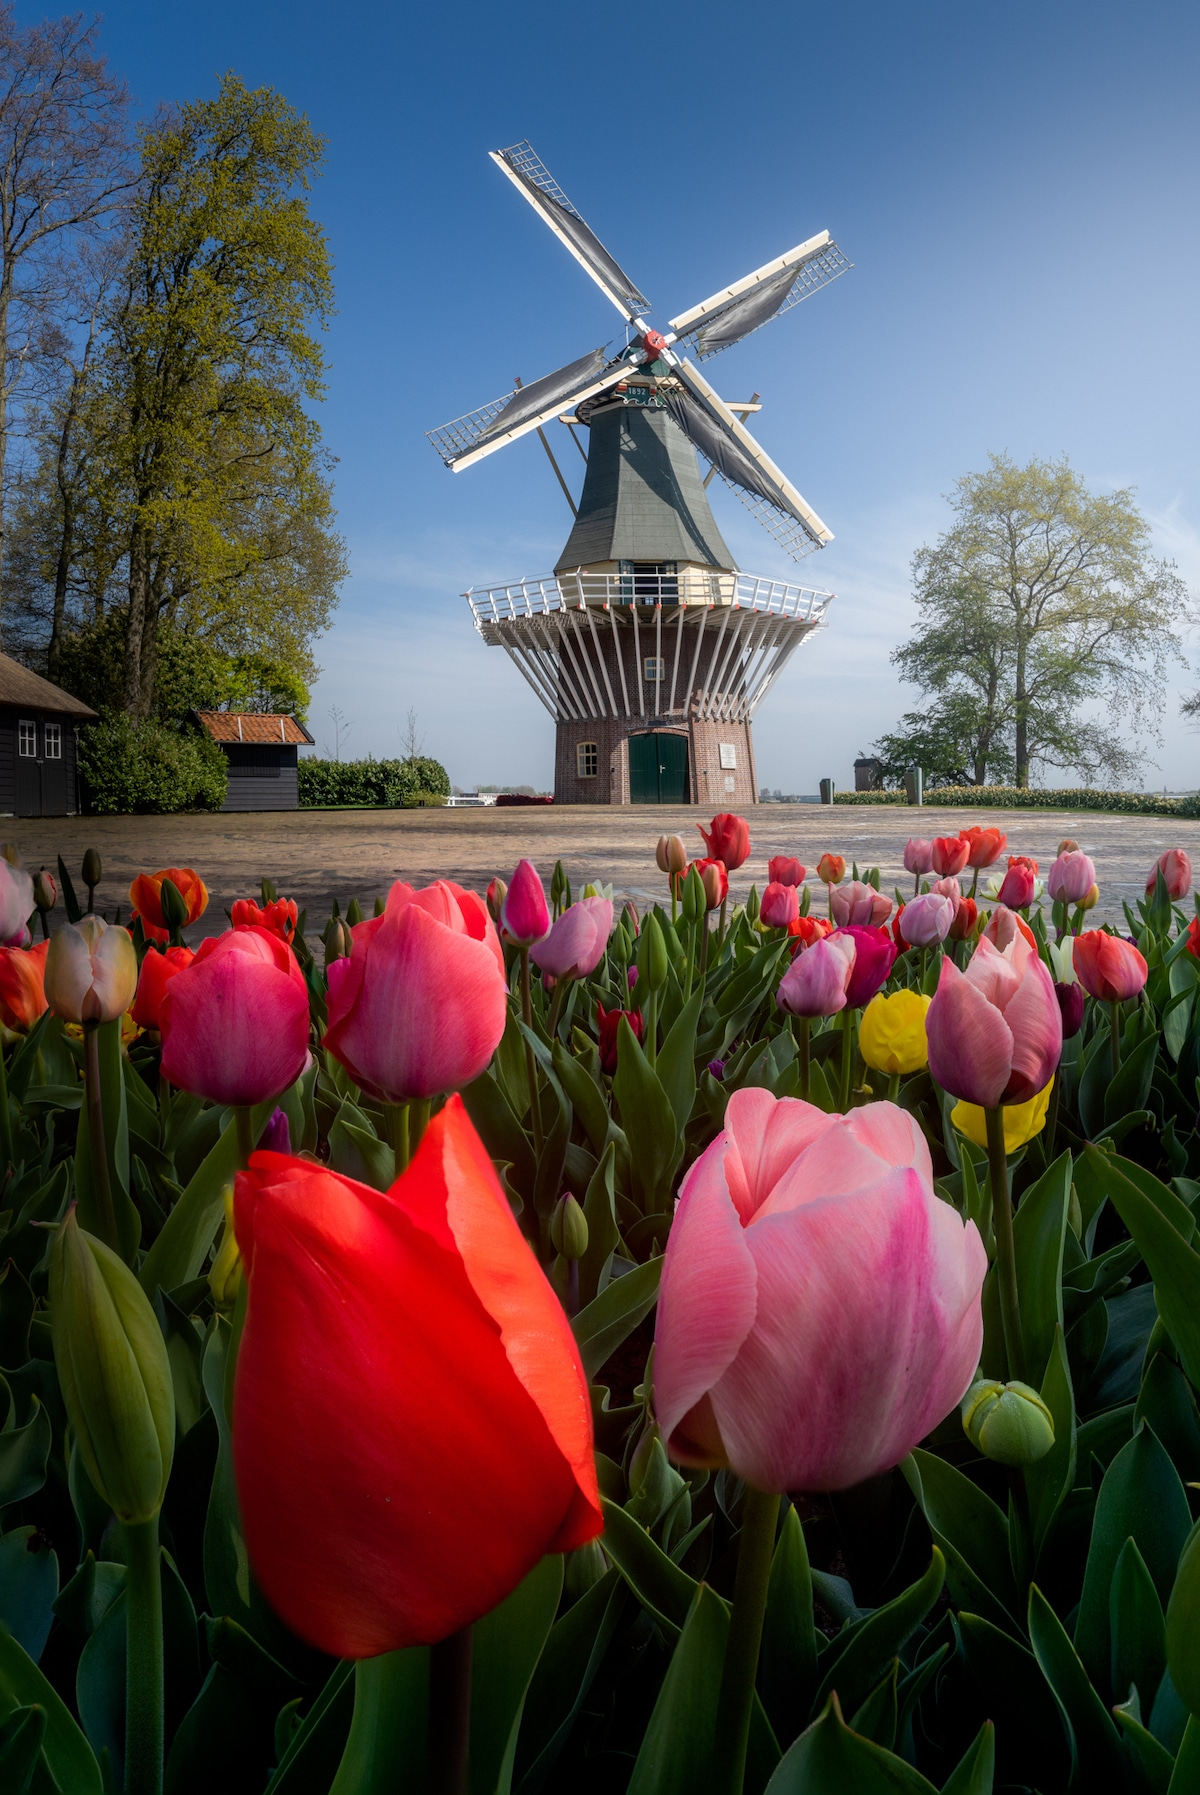 Windmill and Tulips at the Keukenhof